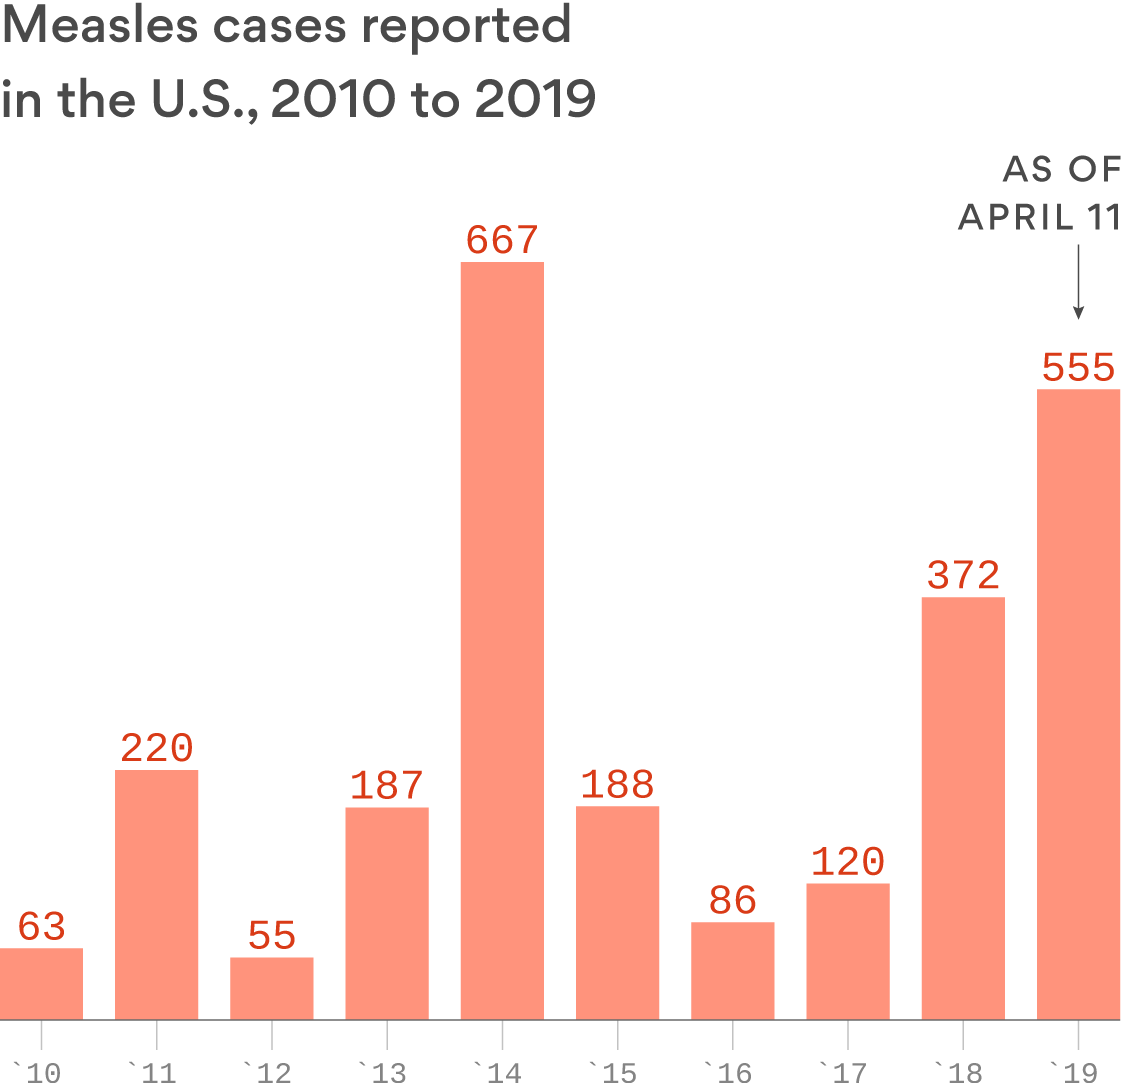 Alarming measles trends: U.S. reports 90 new measles cases last week alone, while WHO report shows global spike